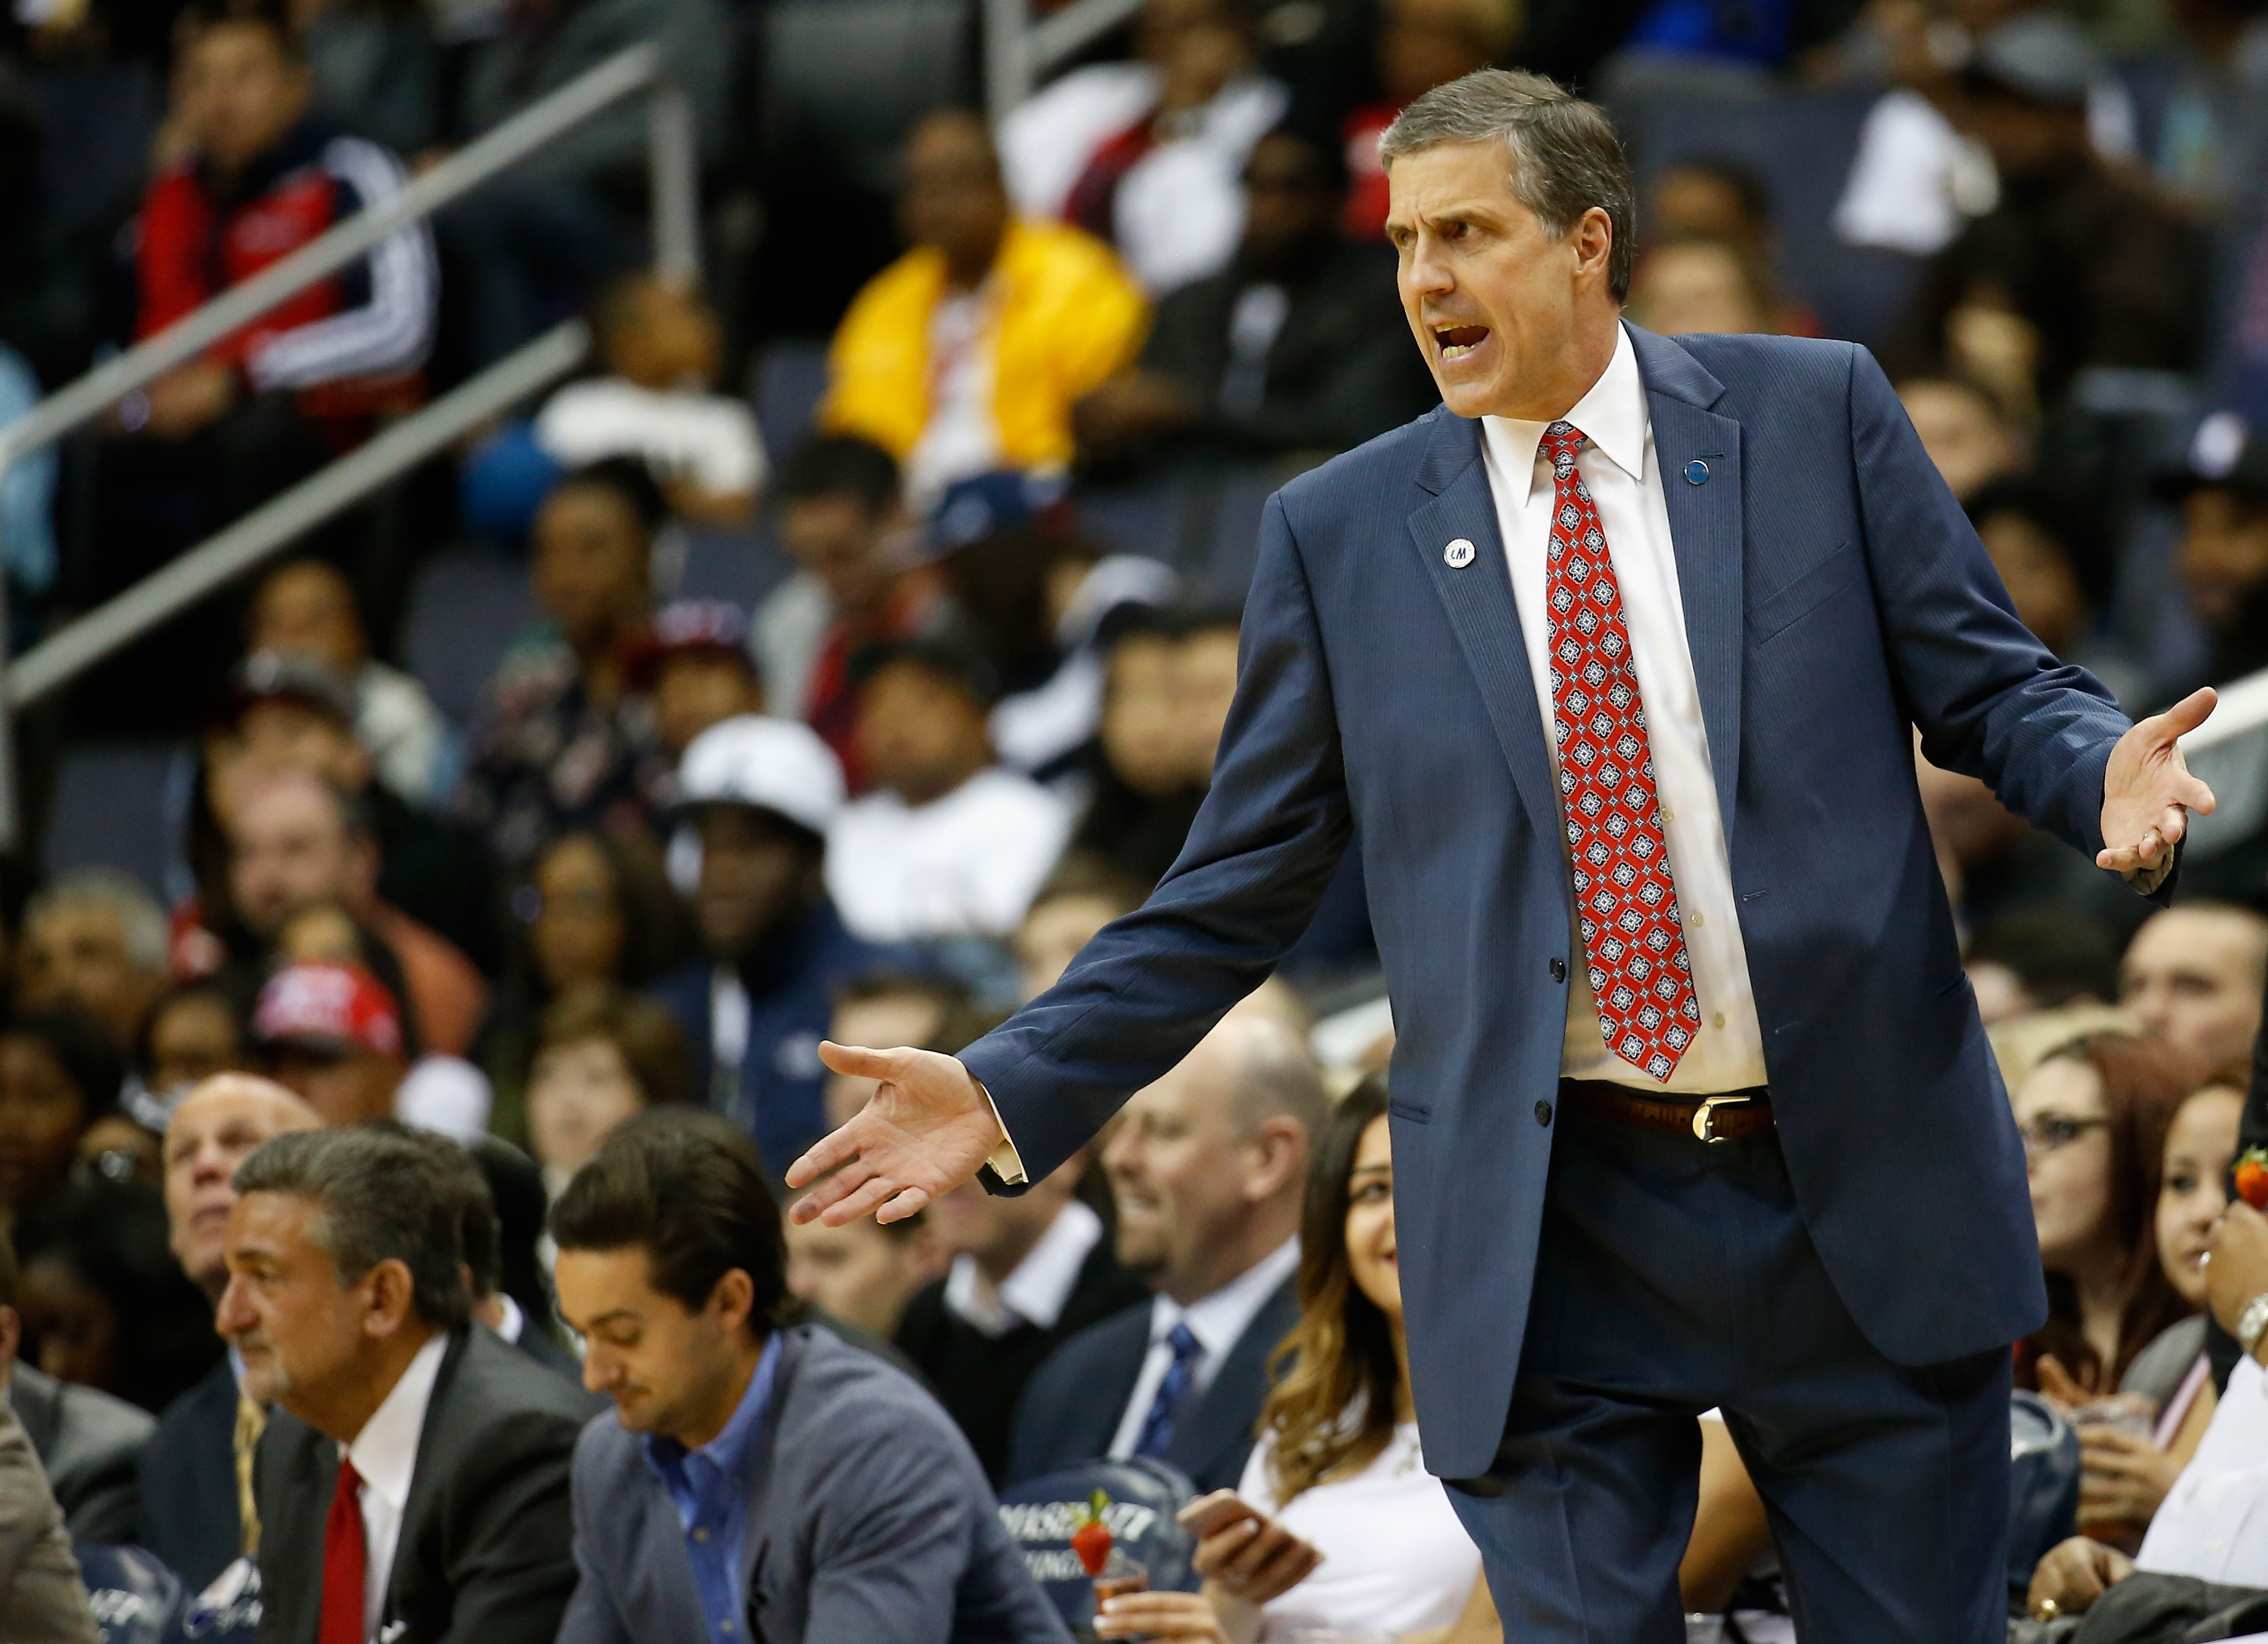 WASHINGTON, DC - APRIL 13: Washington Wizards owner Ted Leonsis, far left, looks on as head coach Randy Wittman (R) reacts to a first half play against the Atlanta Hawks  at Verizon Center on April 13, 2016 in Washington, DC.  (Photo by Rob Carr/Getty Ima